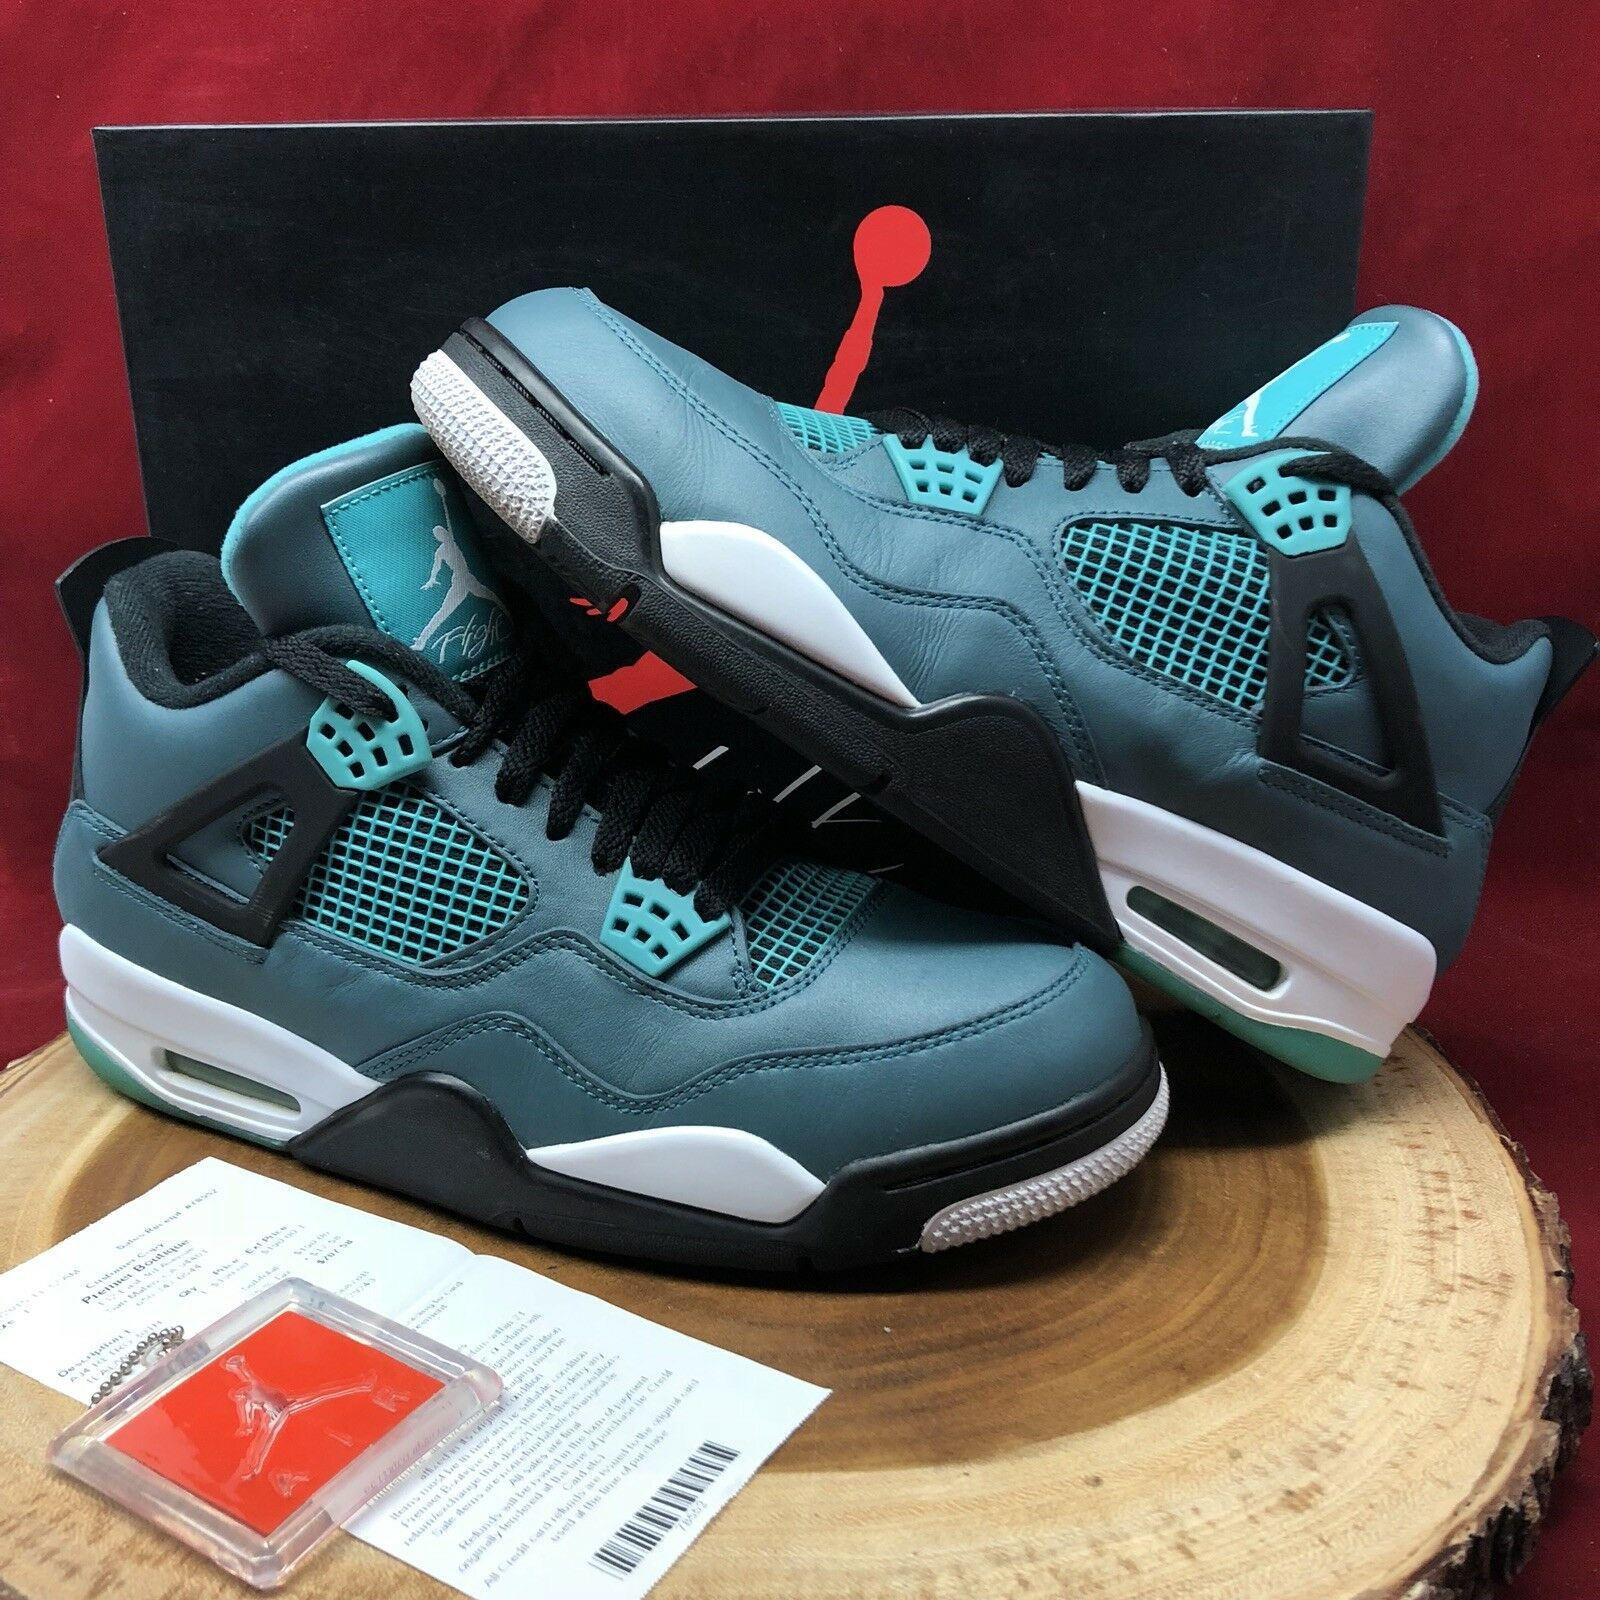 Nike Air Jordan Retro IV Teal Tropical Green Glow 30th Size 10.5 705331 330 Bred